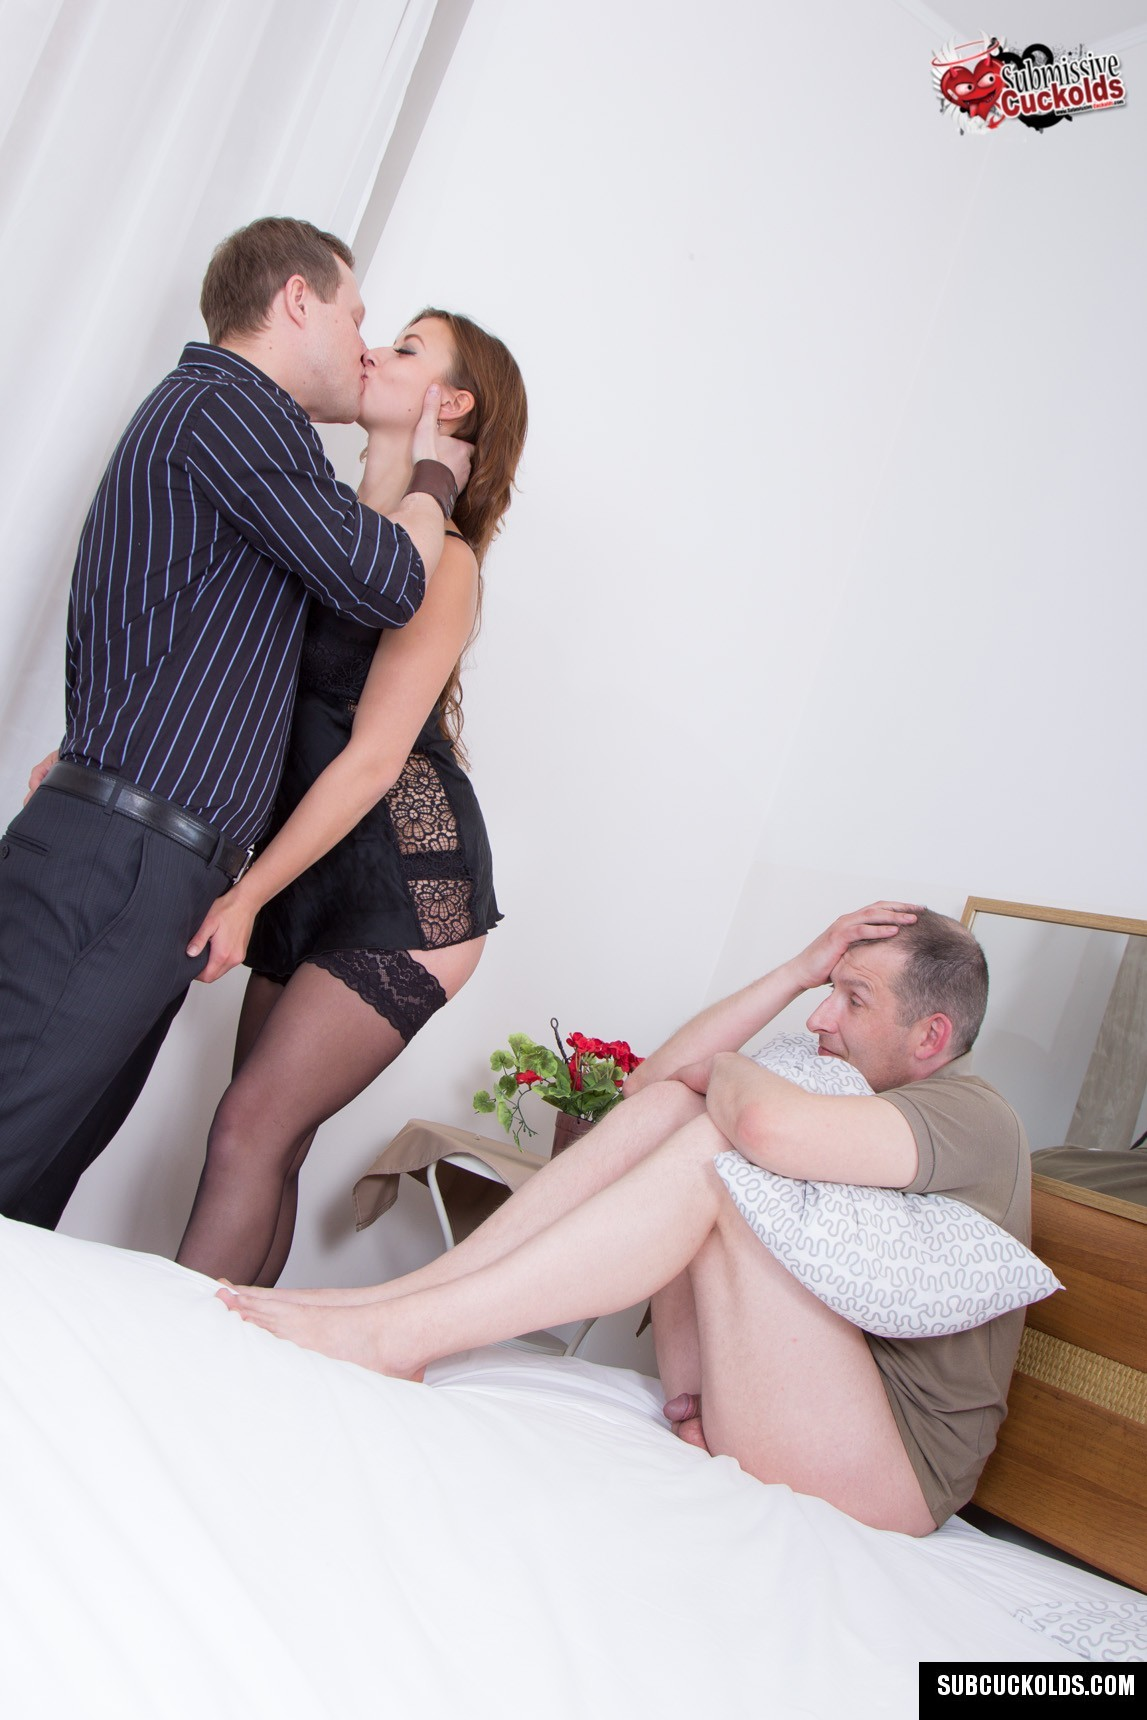 A young cuckold relationship part 3 - 3 part 9